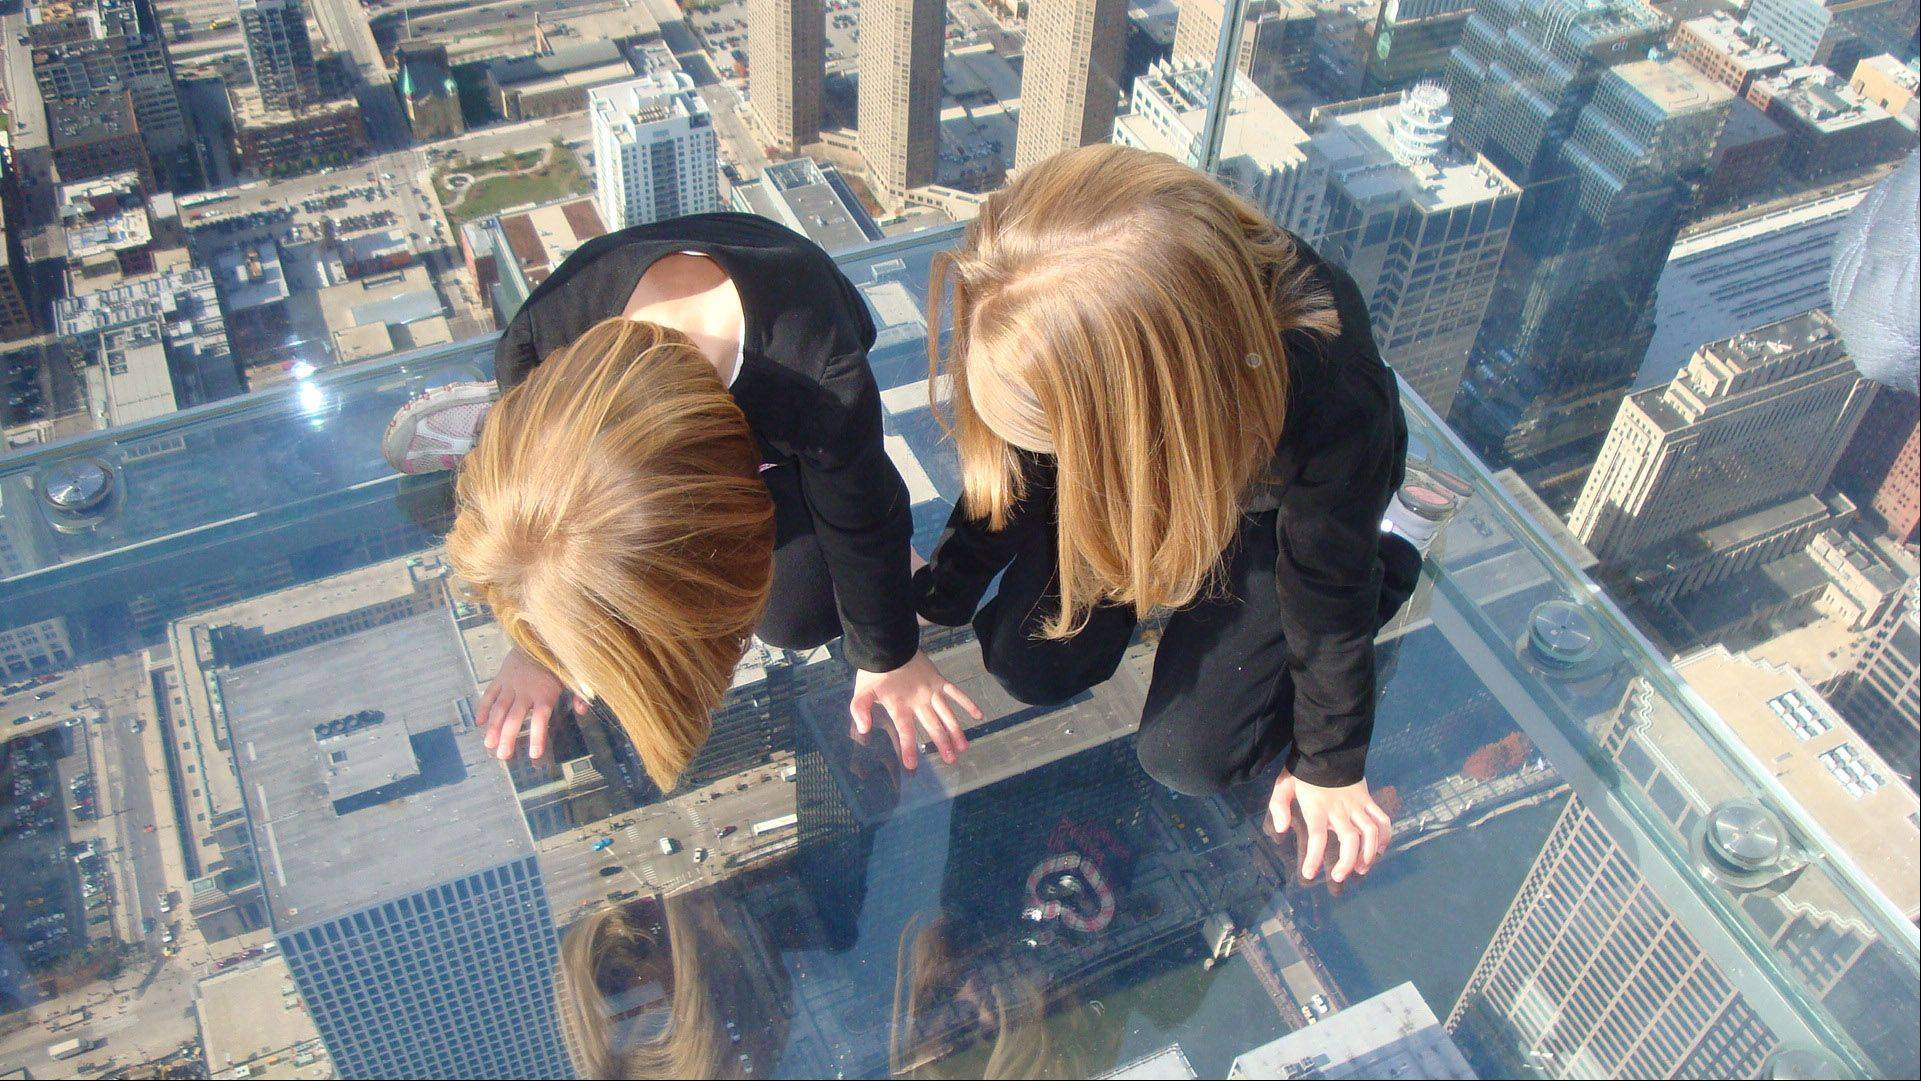 Willis Tower's glass ledges boast more than 6 million visitors